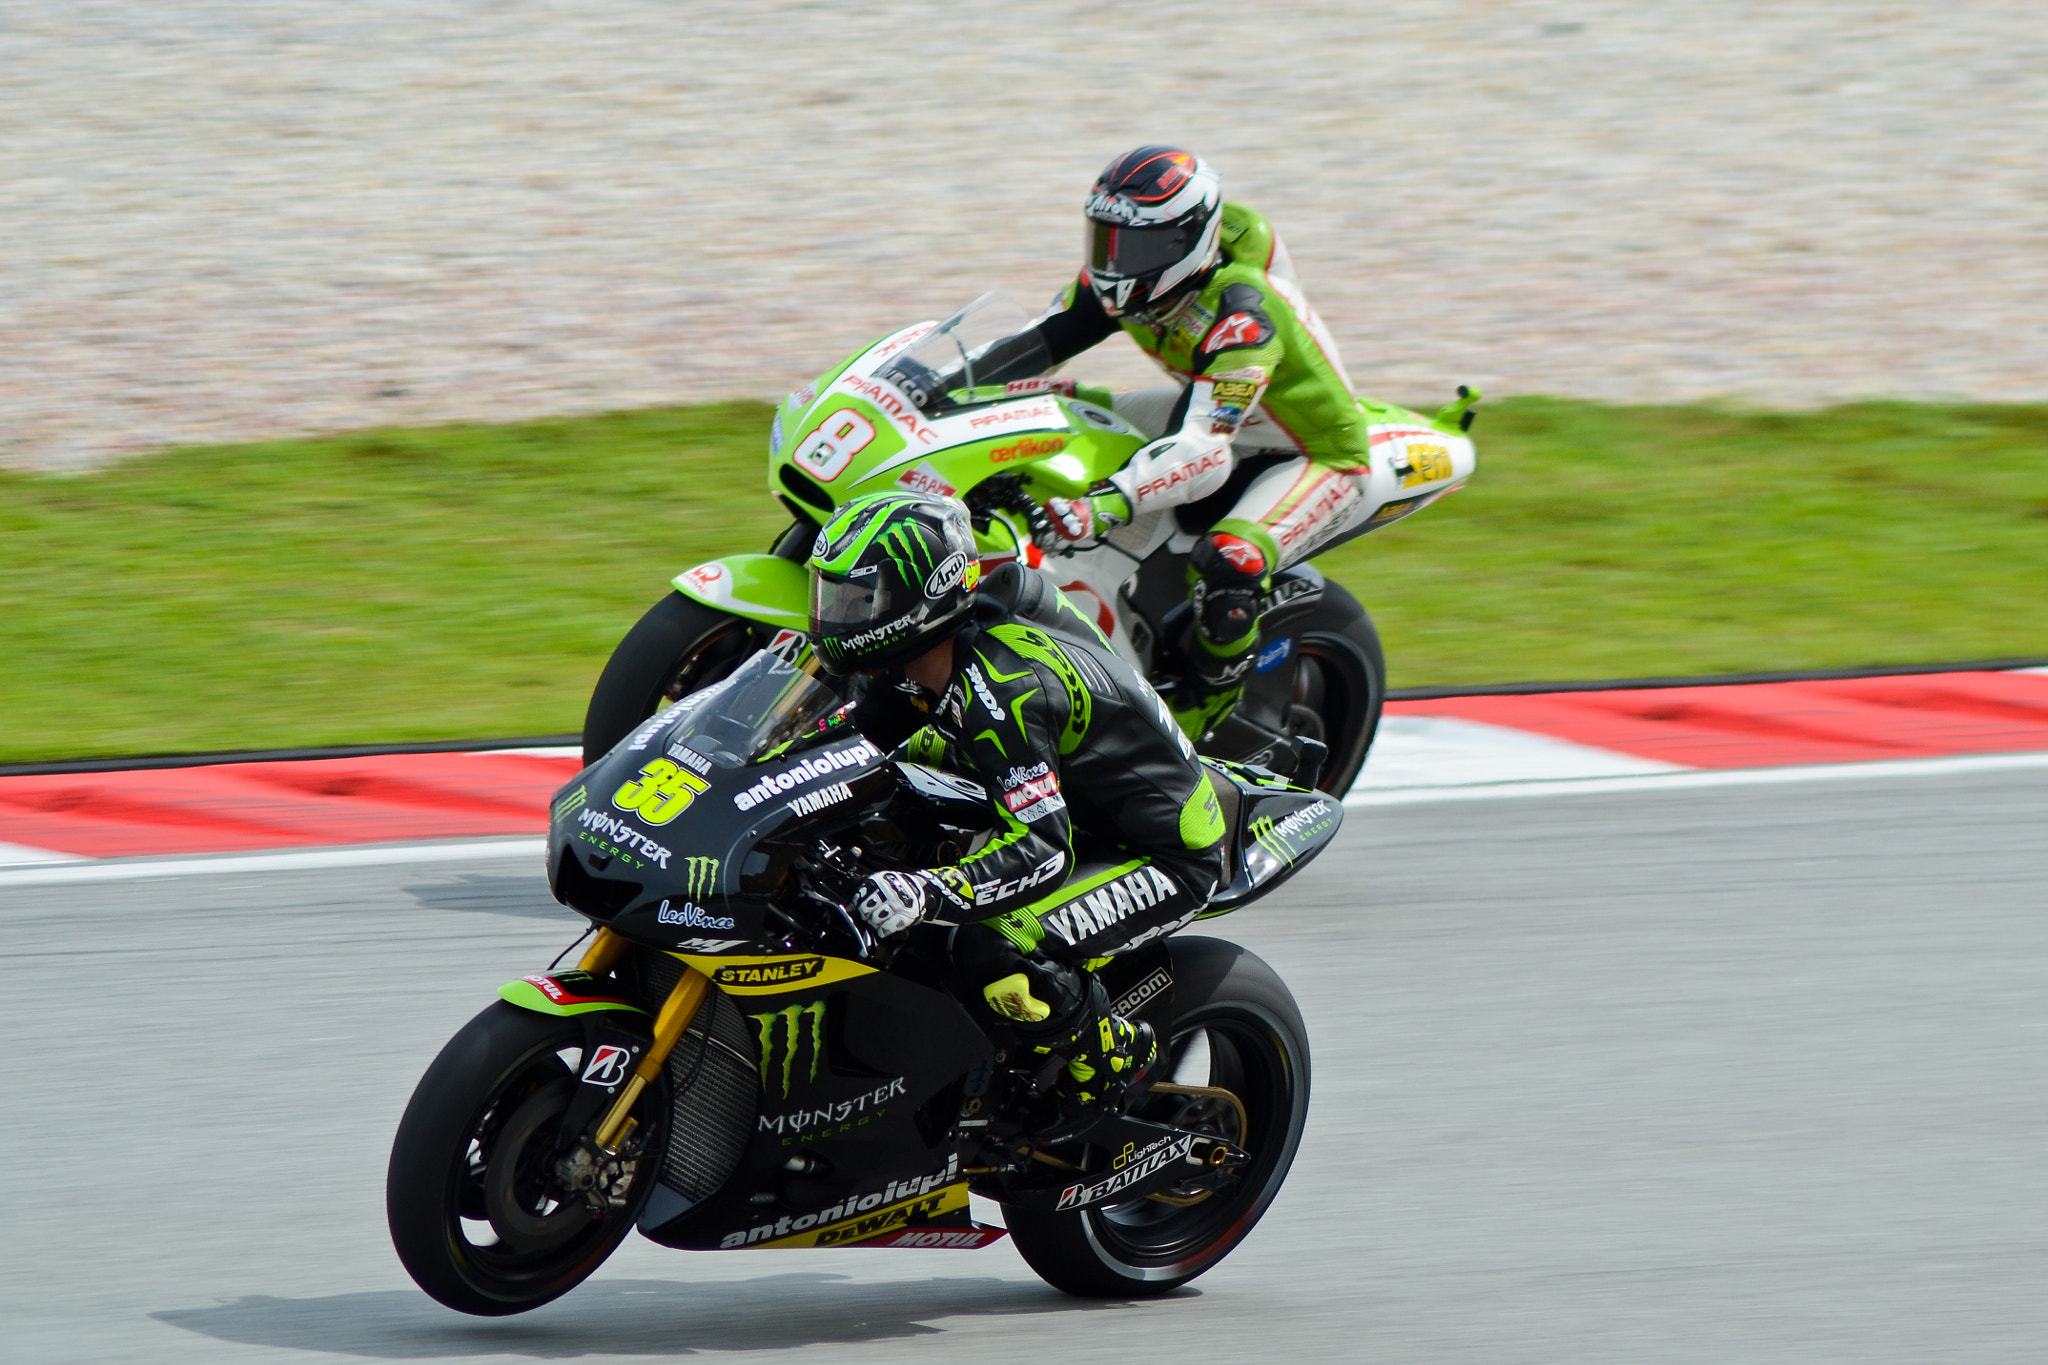 Photograph Hector Barbera and Cal Crutchlow by Mohd Hisyam Saleh on 500px